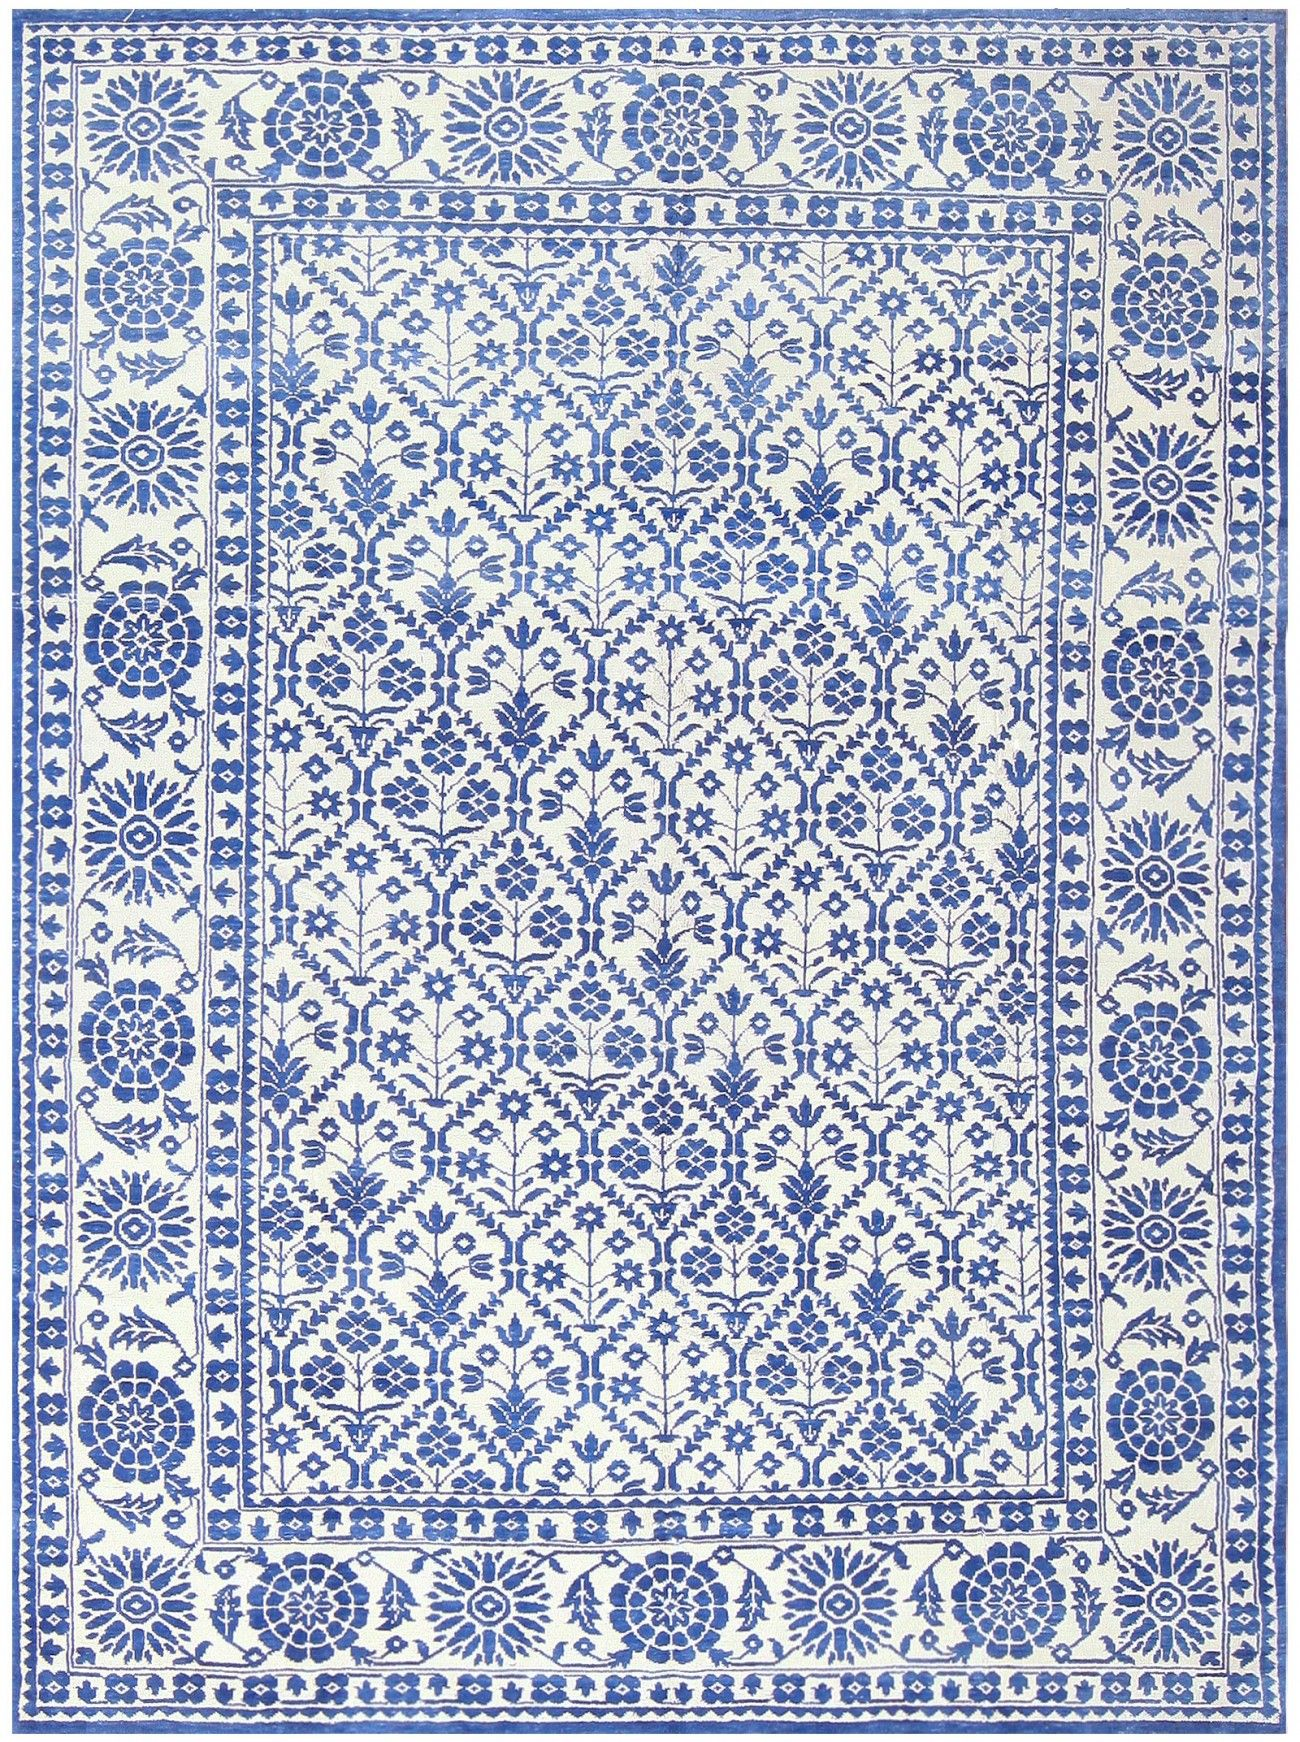 Outdoor Teppich Malta Blue And White Vintage Indian Agra Cotton Rug 48300 By Nazmiyal